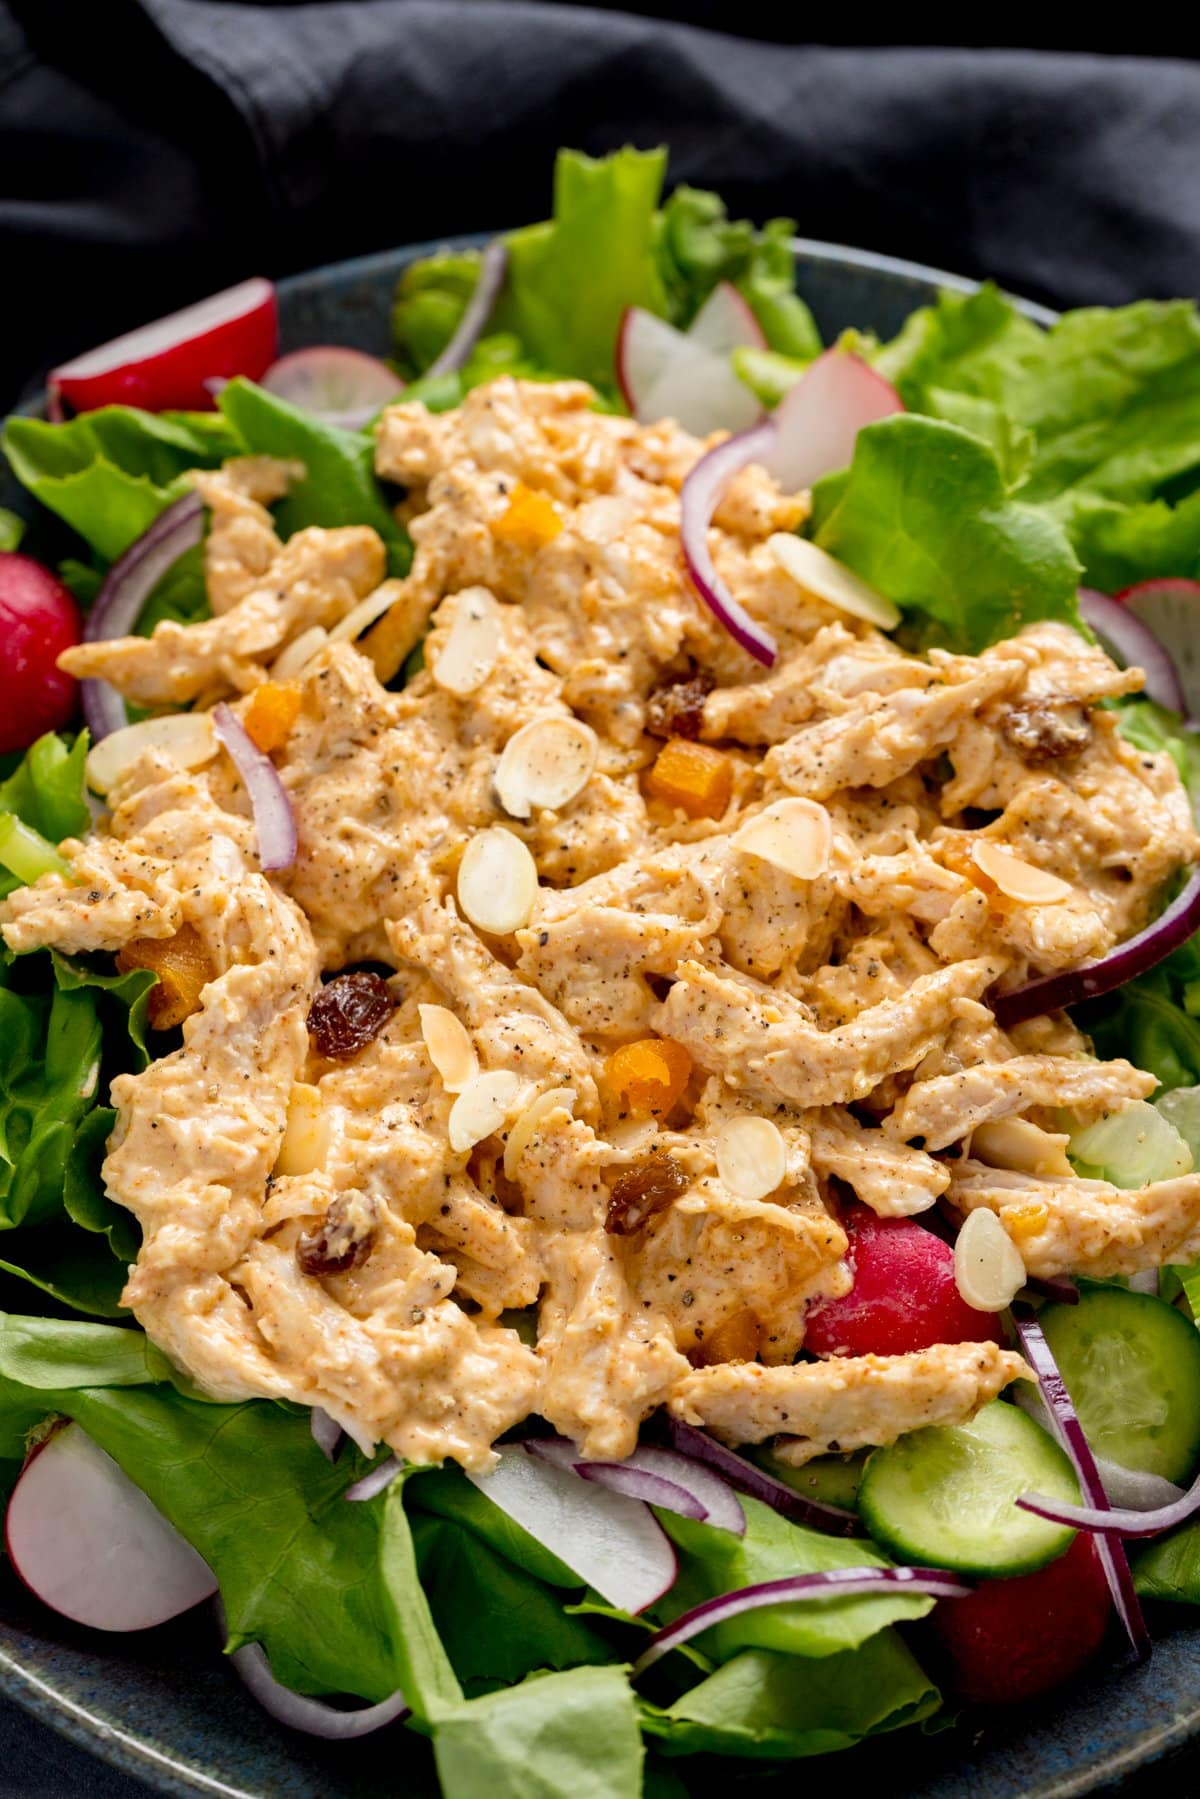 Overhead of coronation chicken on a bed of salad on a dark surface.